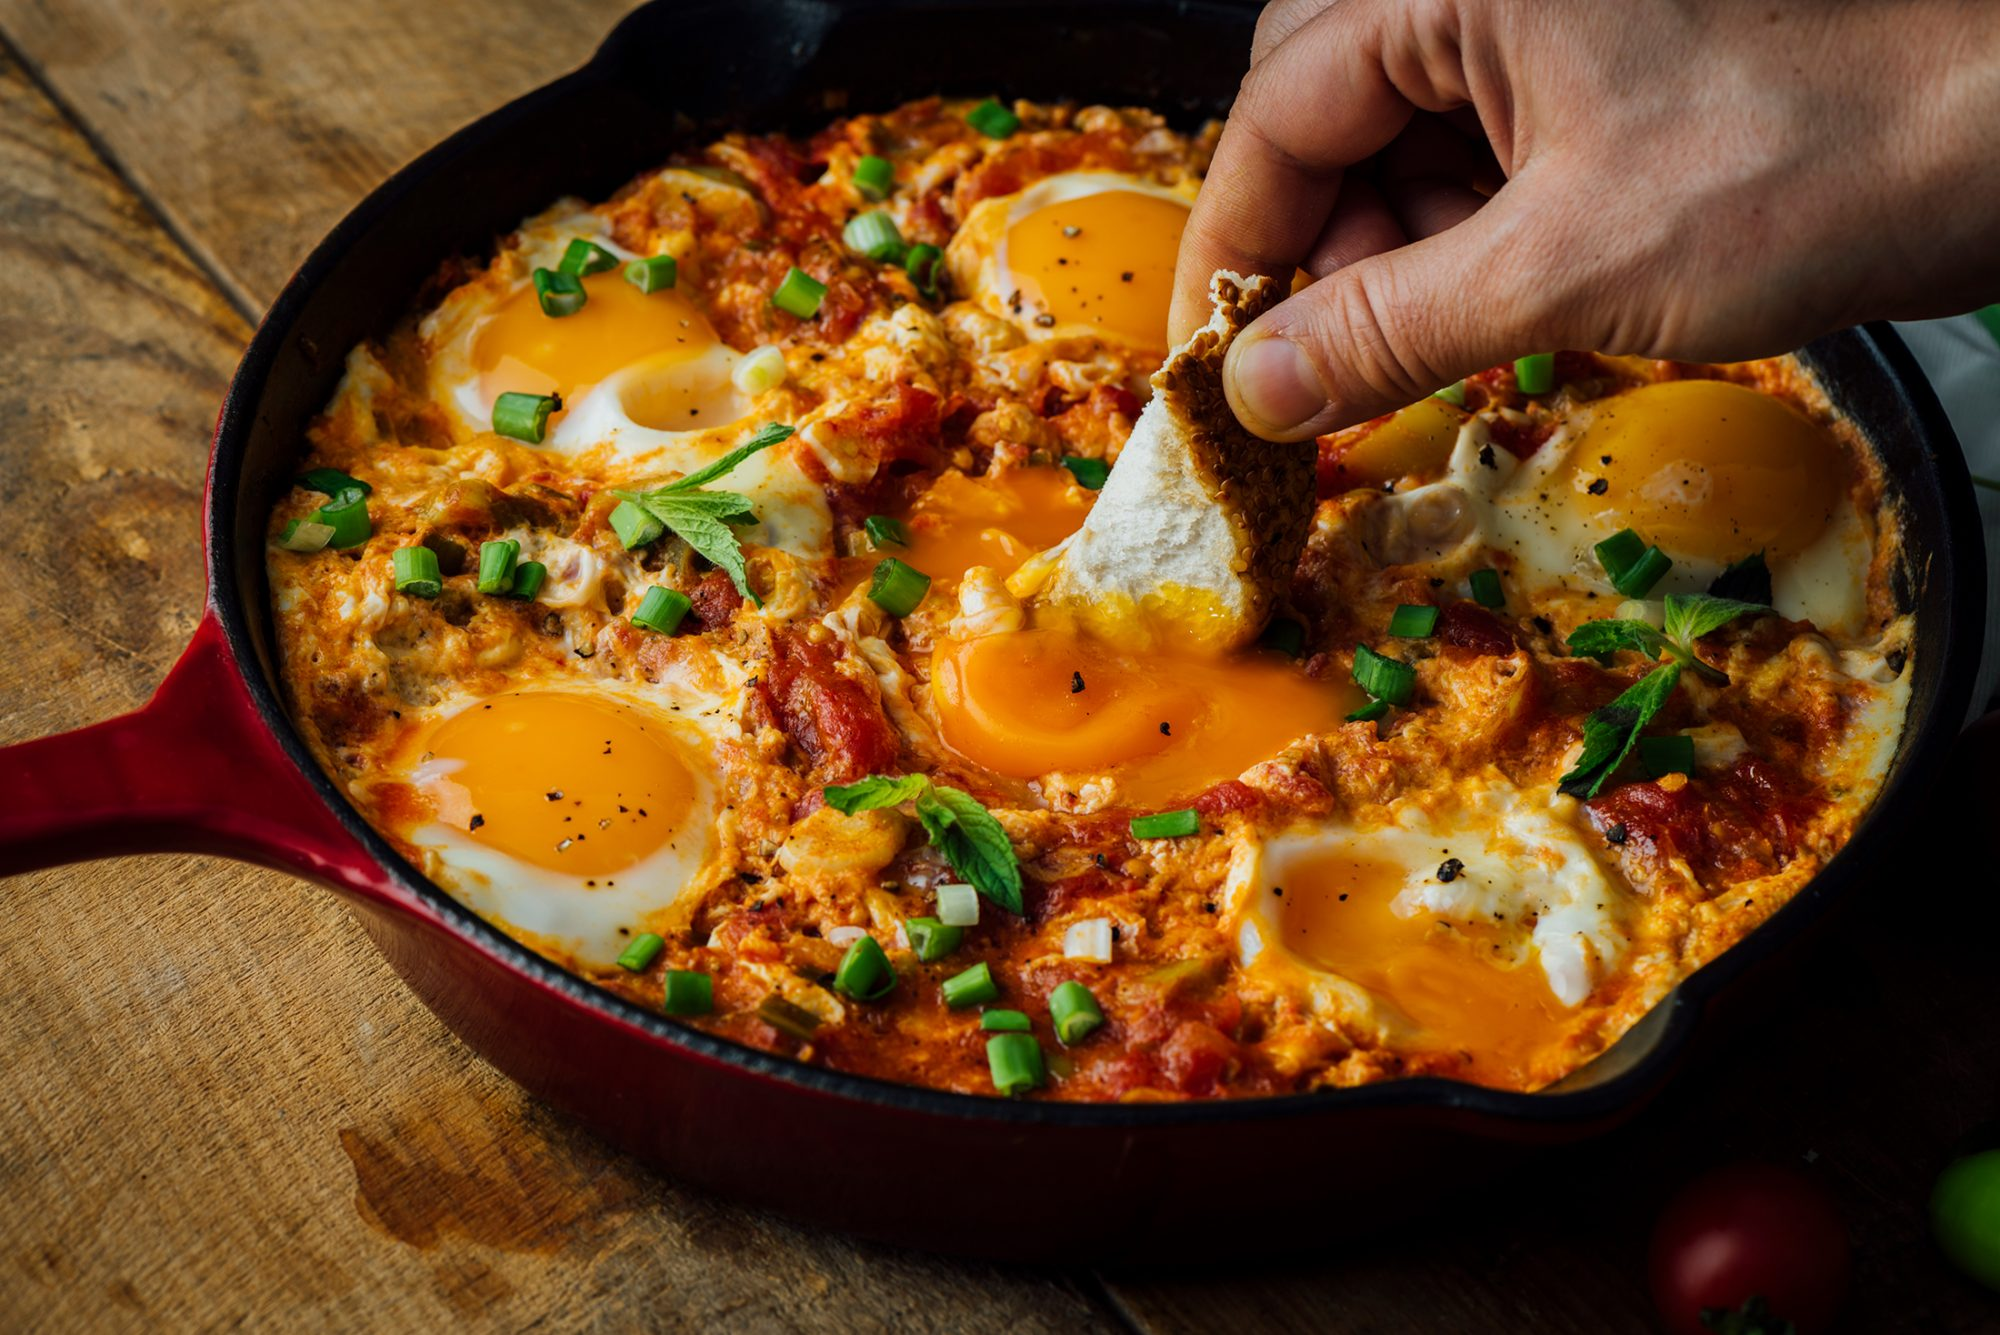 050520_Getty Shakshuka